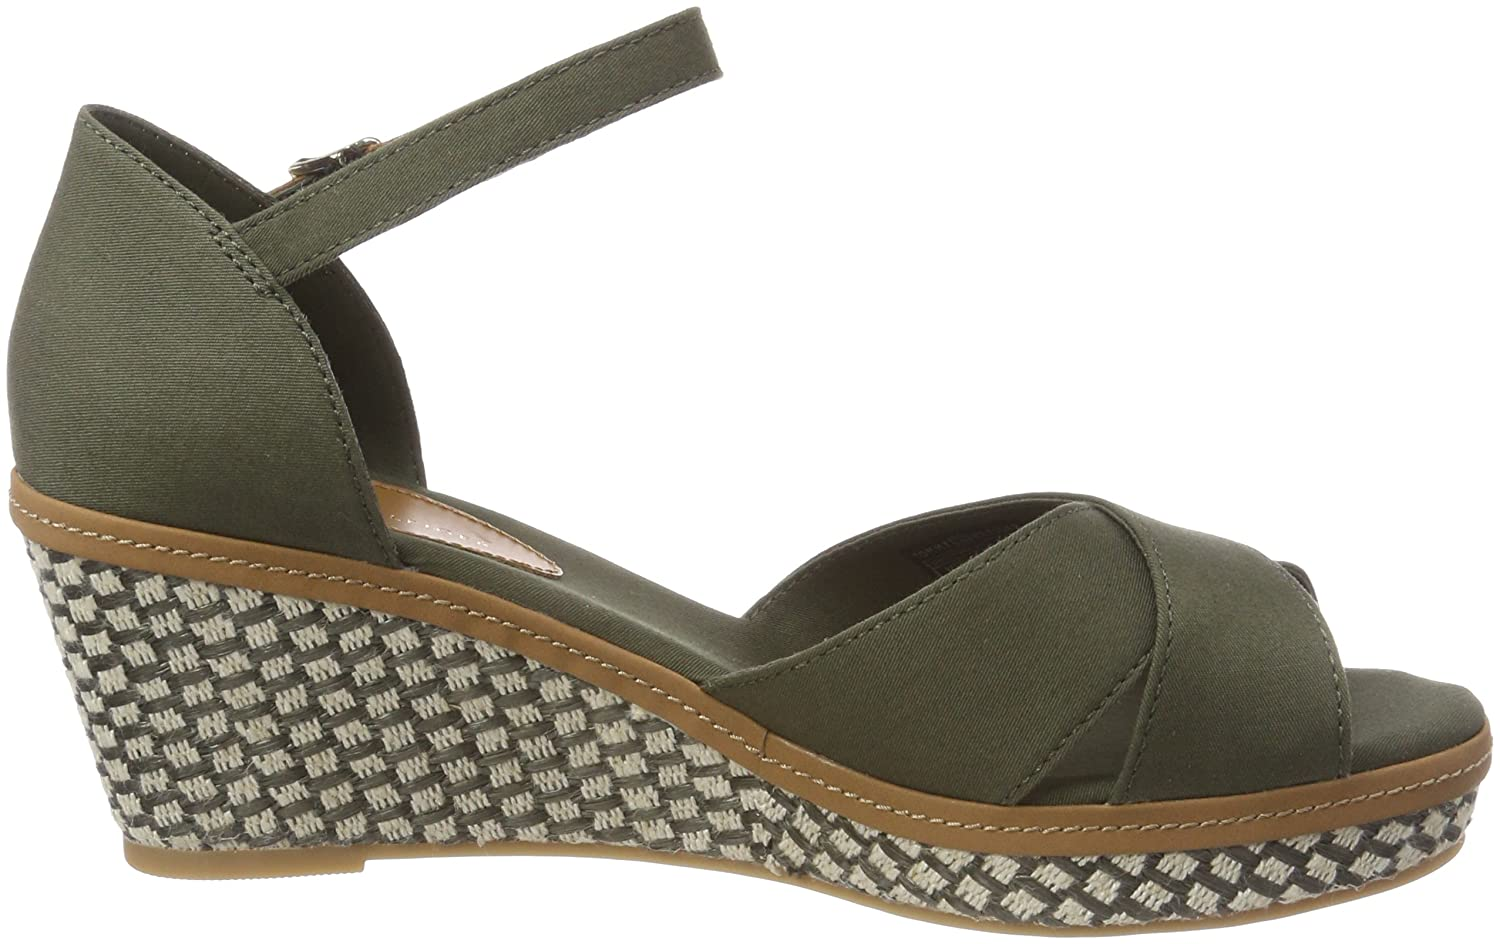 65dda68919b2f Tommy Hilfiger Women s s Iconic Elba Sandal Basic Ankle Strap Green   Amazon.co.uk  Shoes   Bags